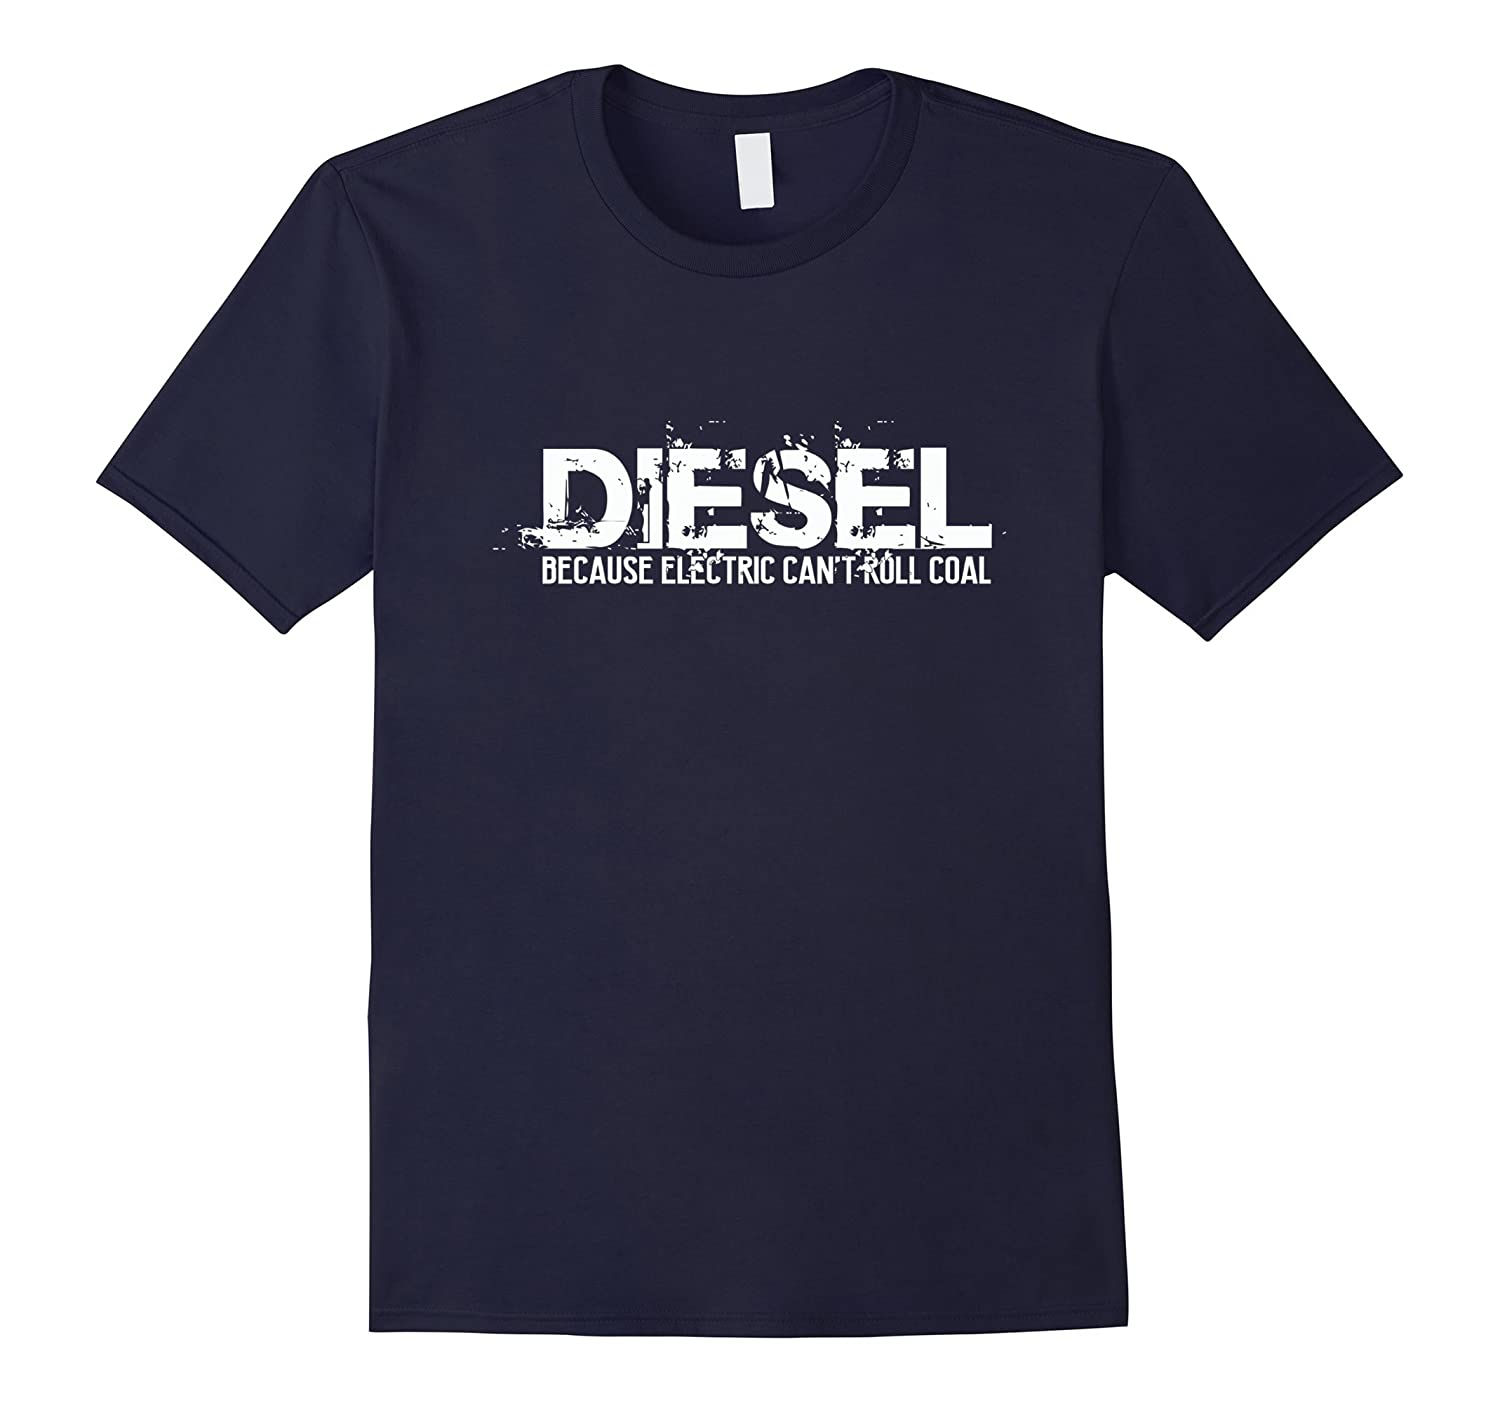 Diesel Because Electric Can't Roll Coal T-Shirt Funny Truck-Art